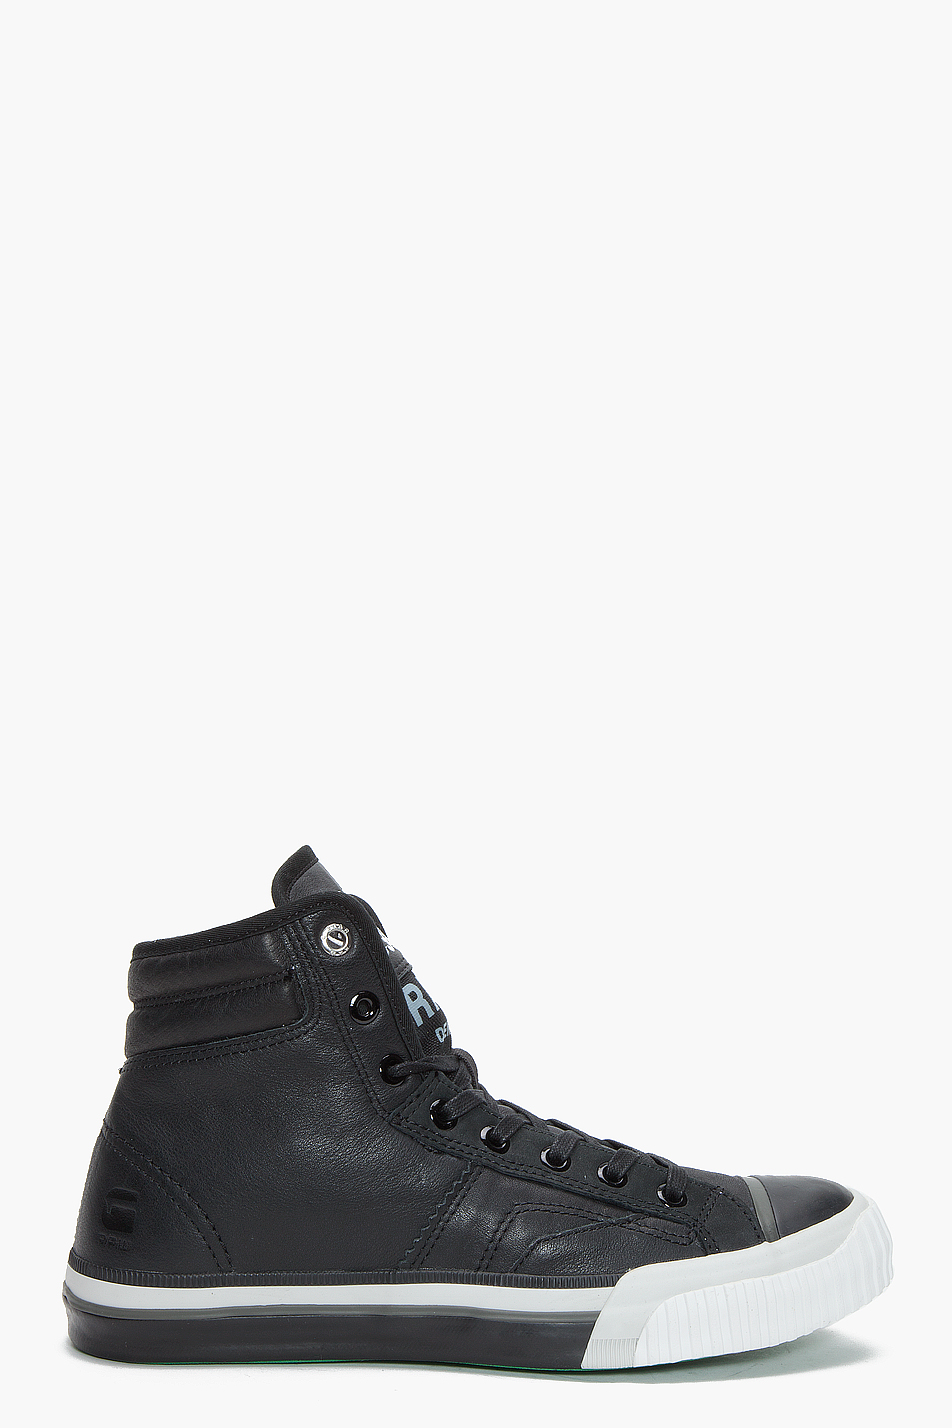 g star raw campus term scott ii hi leather sneakers in black for men lyst. Black Bedroom Furniture Sets. Home Design Ideas